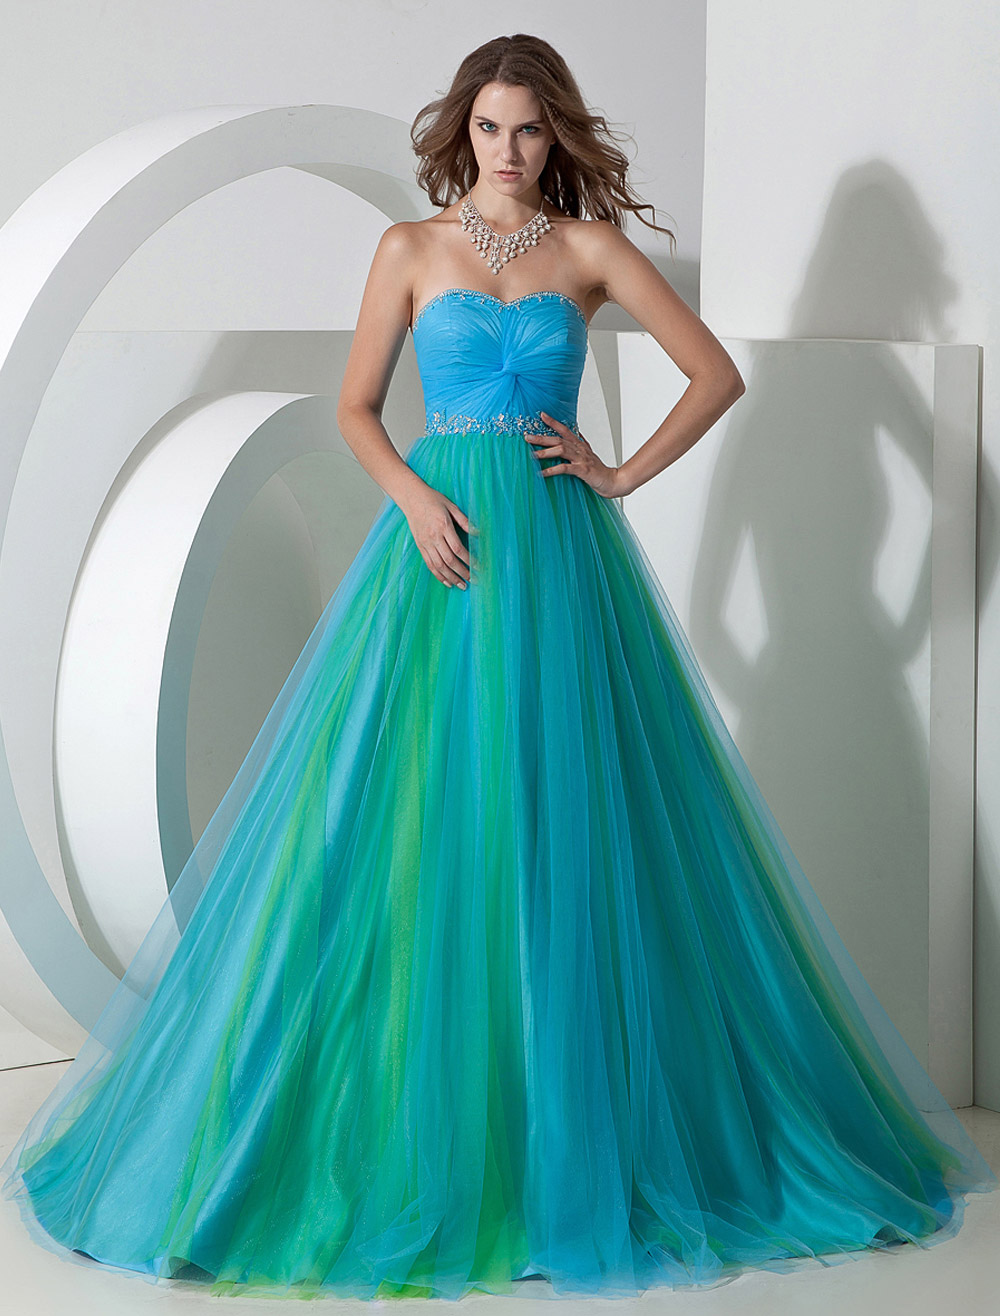 Two-Tone Prom Dress Twisted Ruched Lace Up Tulle Satin Dress ...